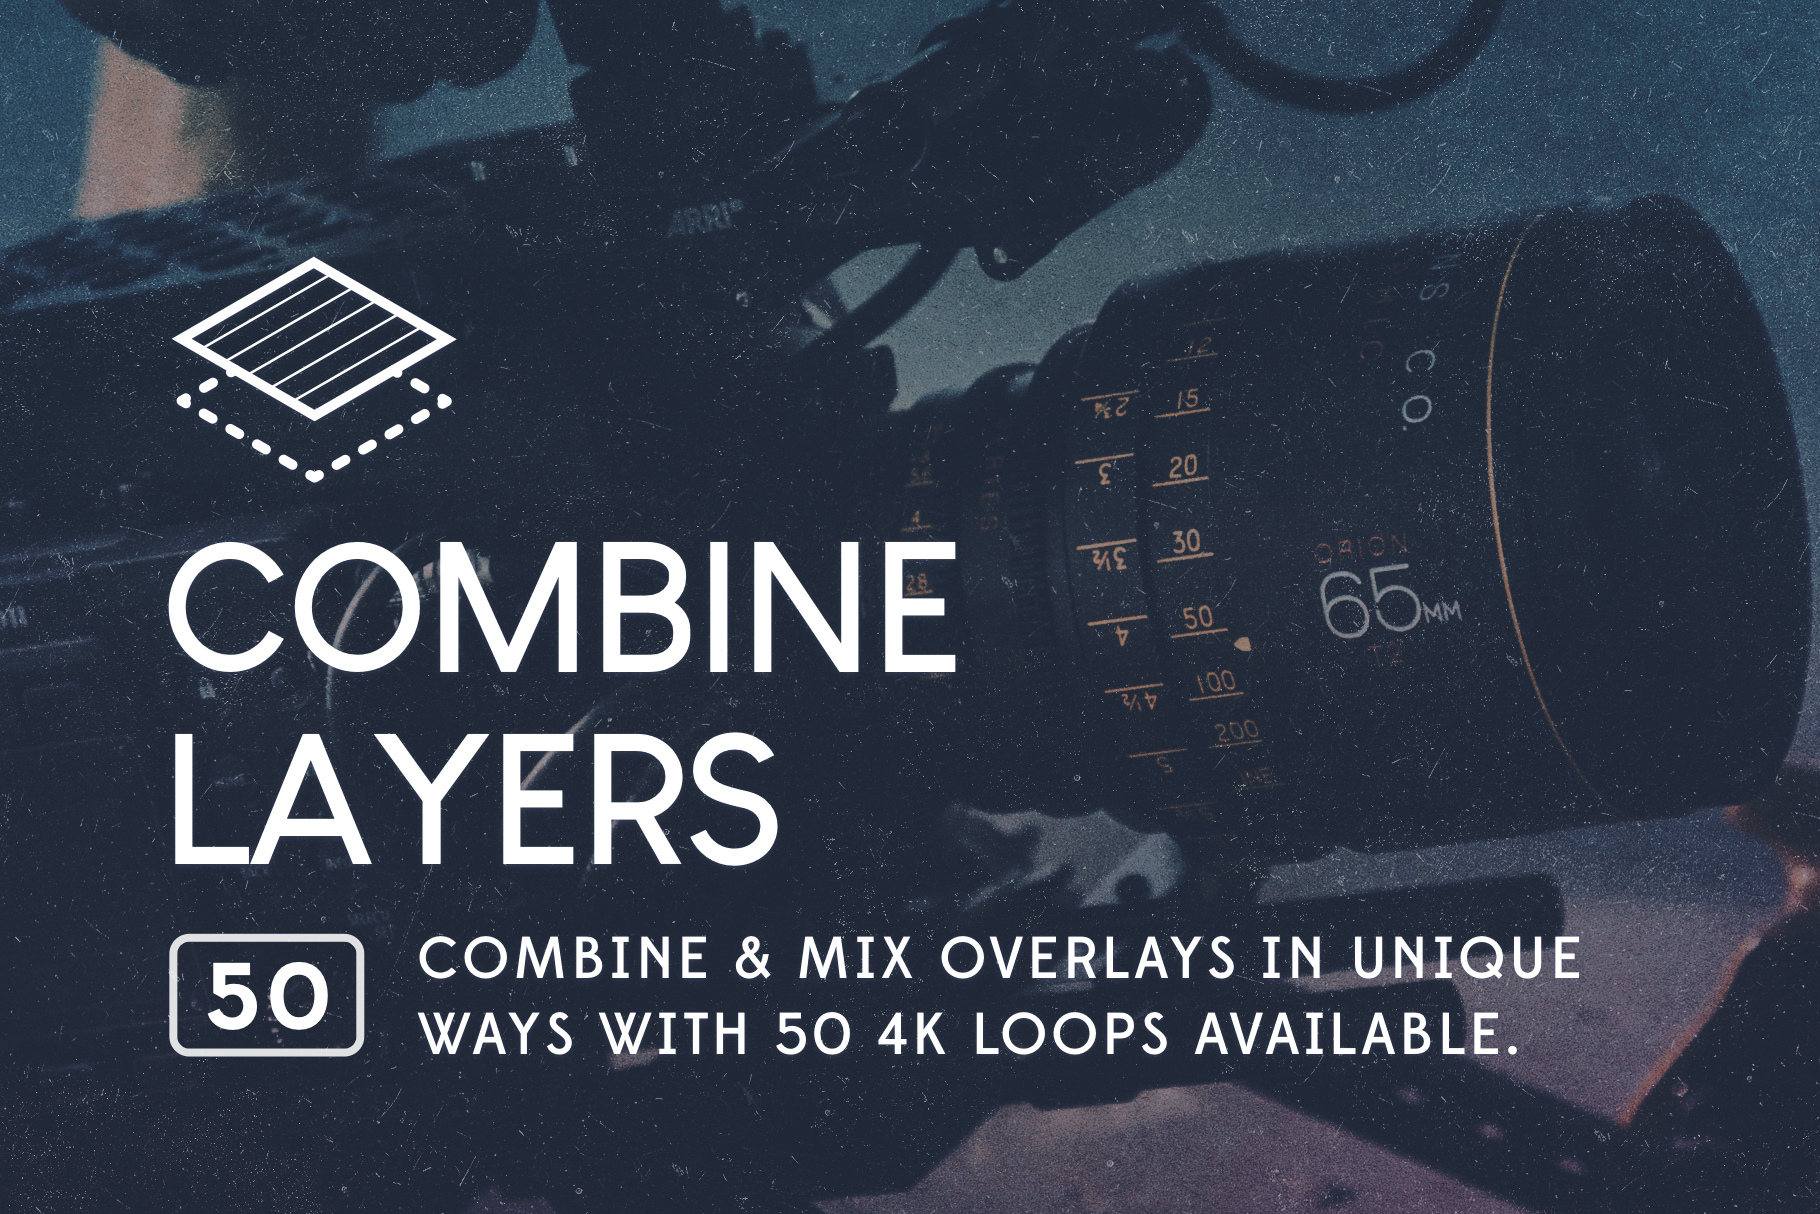 combine and mix layers of video overlays